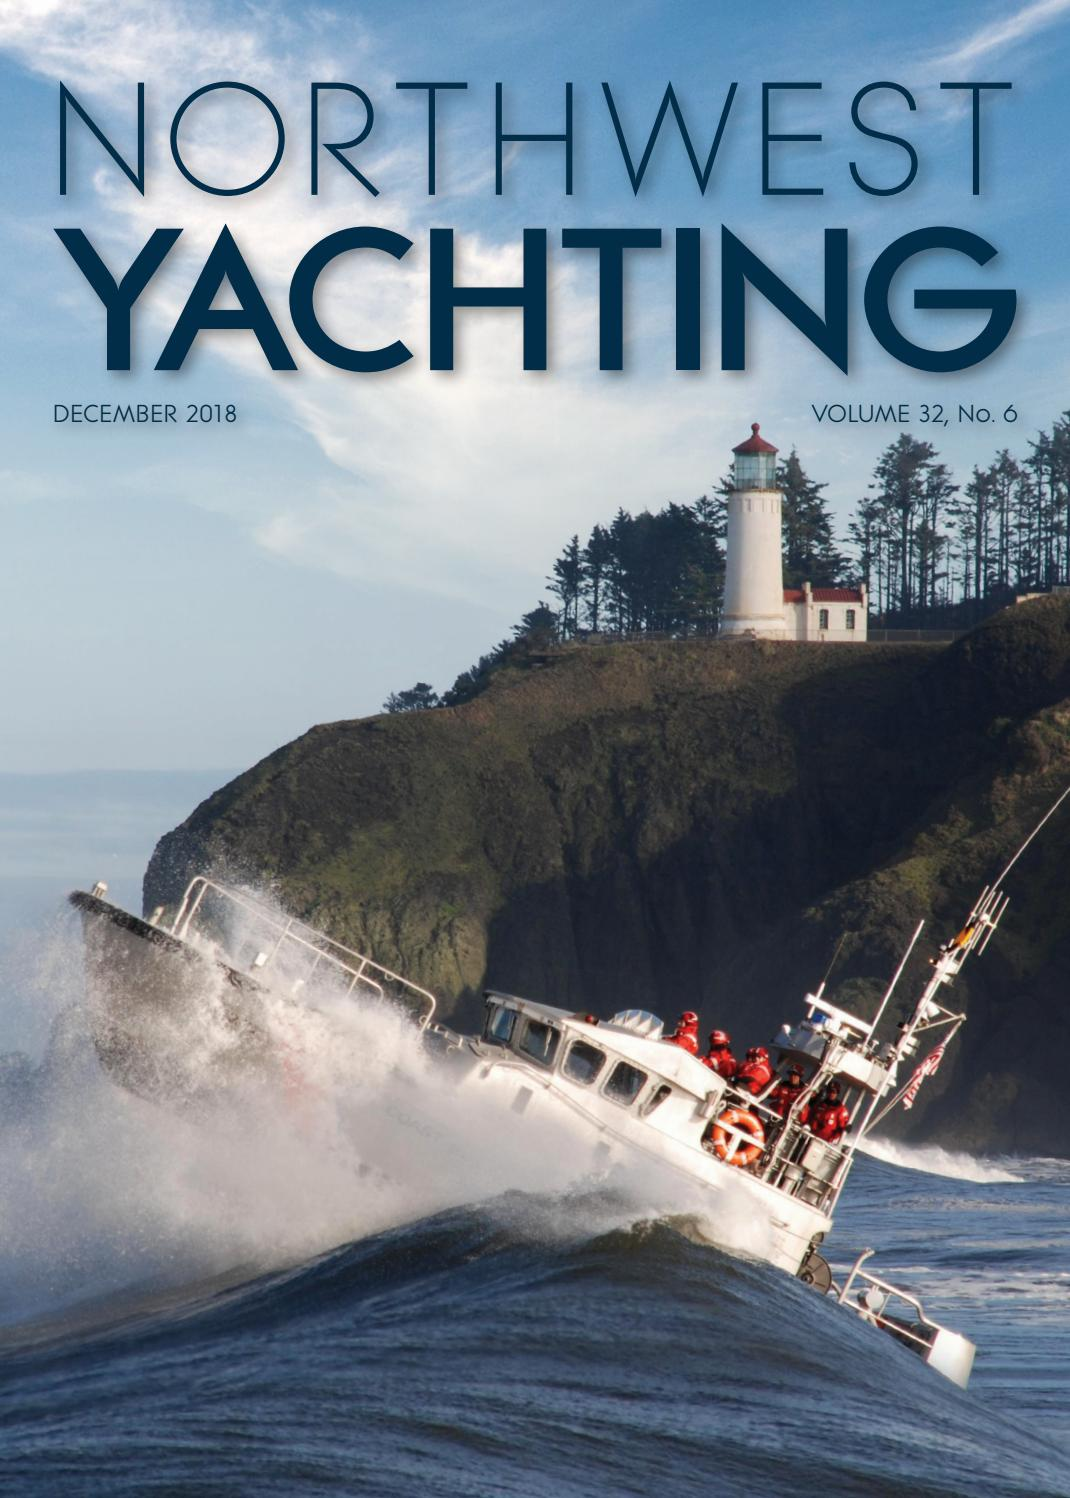 Northwest Yachting December 2018 By Issuu Upper Omc Wiring Harness 1972